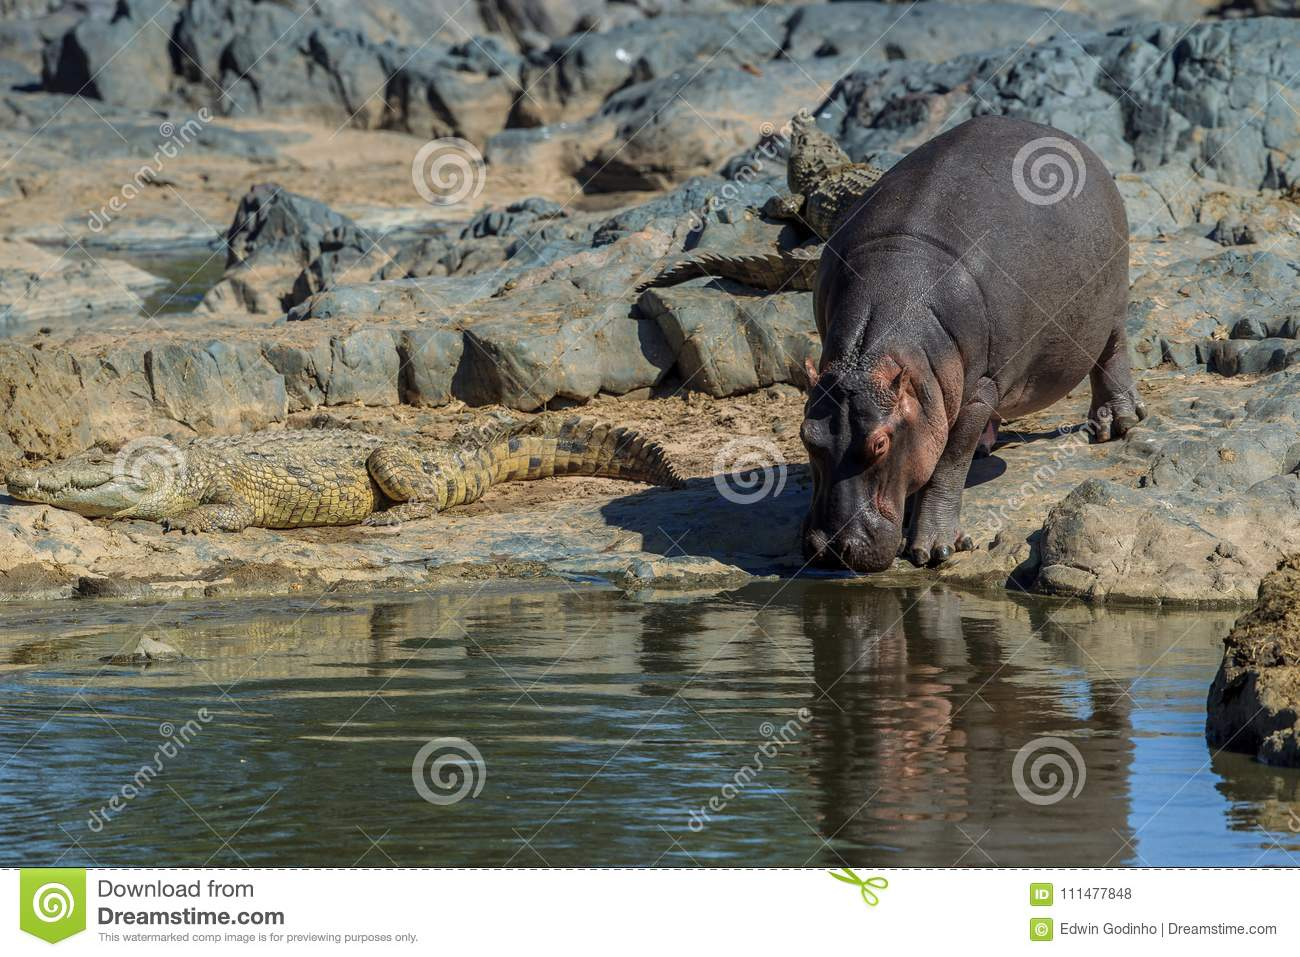 A Hippopotamus with a Nile crocodile in its path